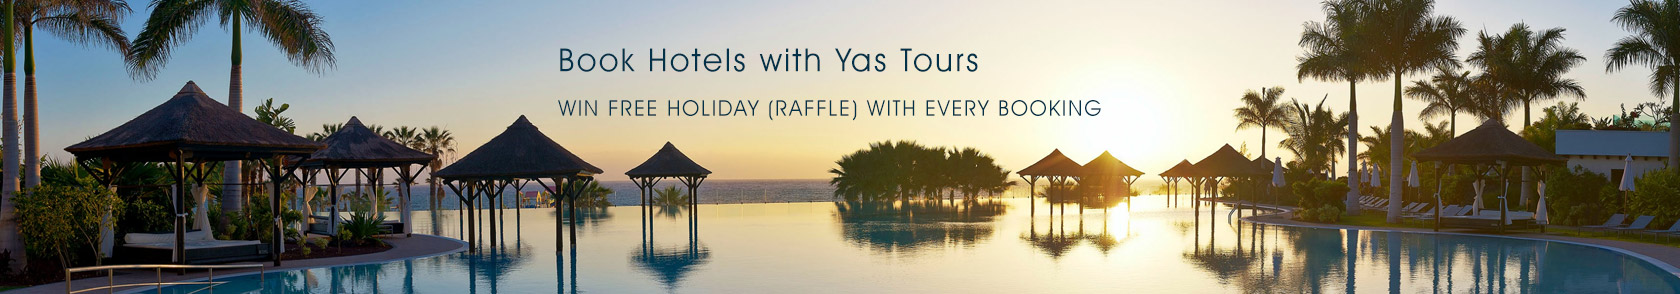 Book Hotels with Yas Tours